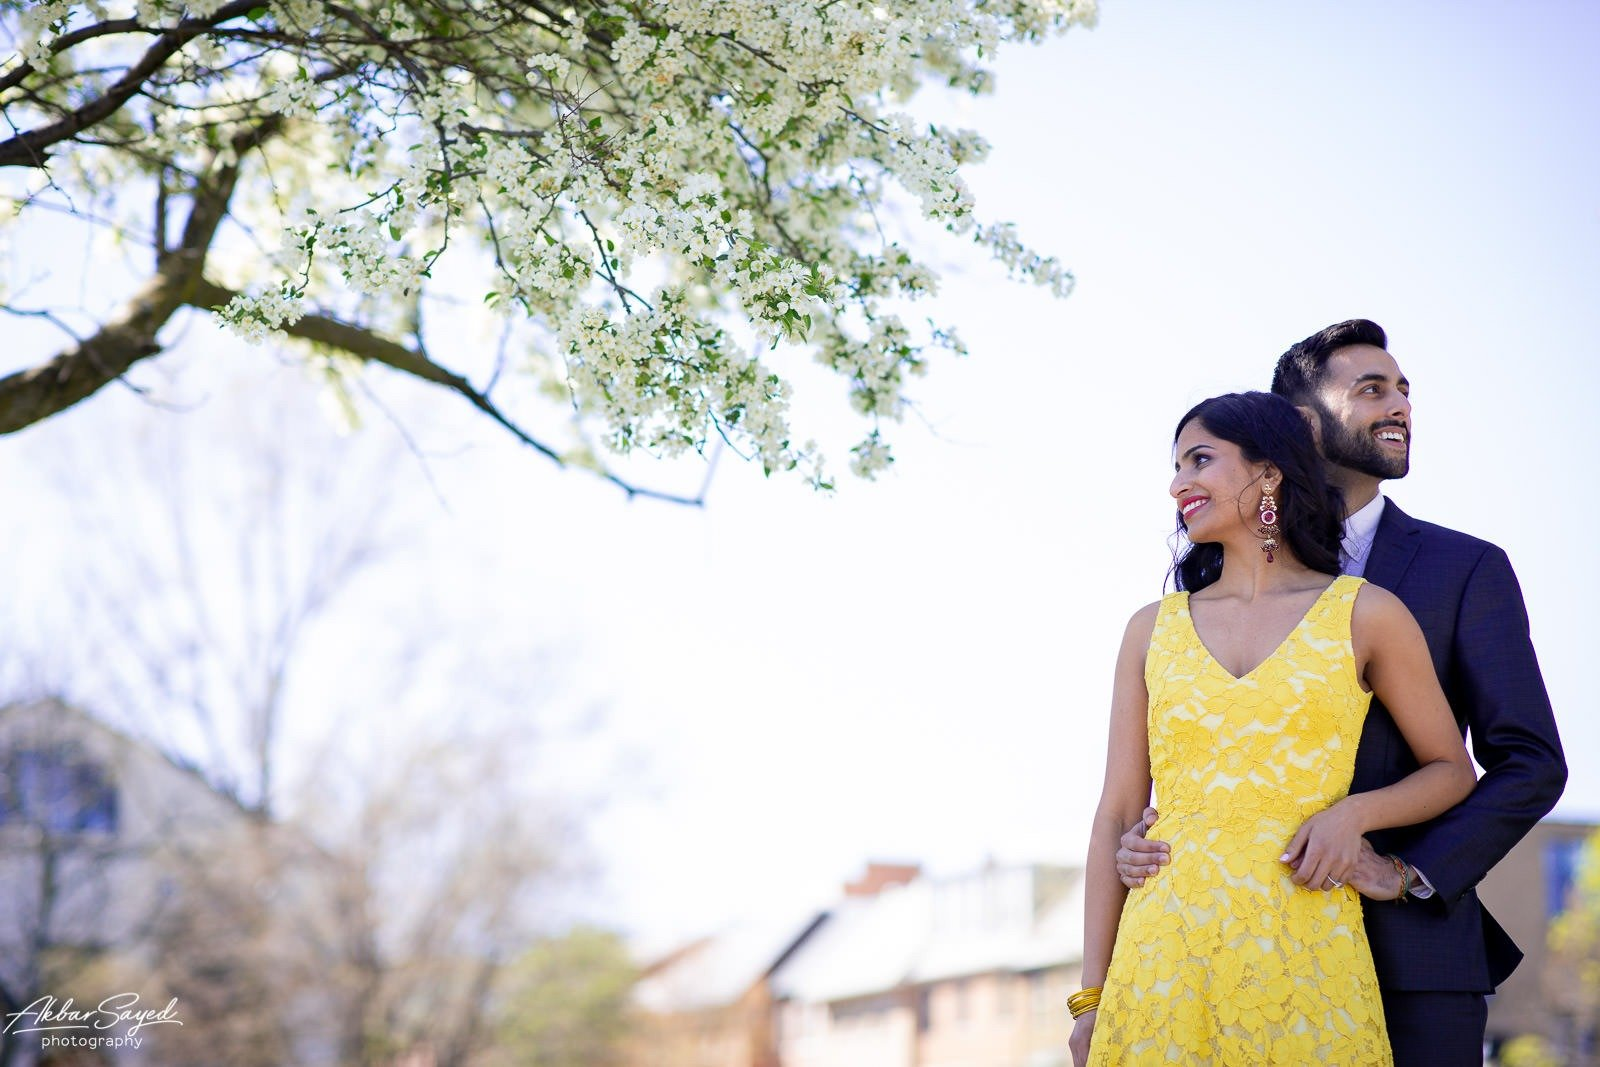 Old Town Alexandria engagement photo with an engaged Indian - American couple in front of a bush in bloom with bright white flowers.